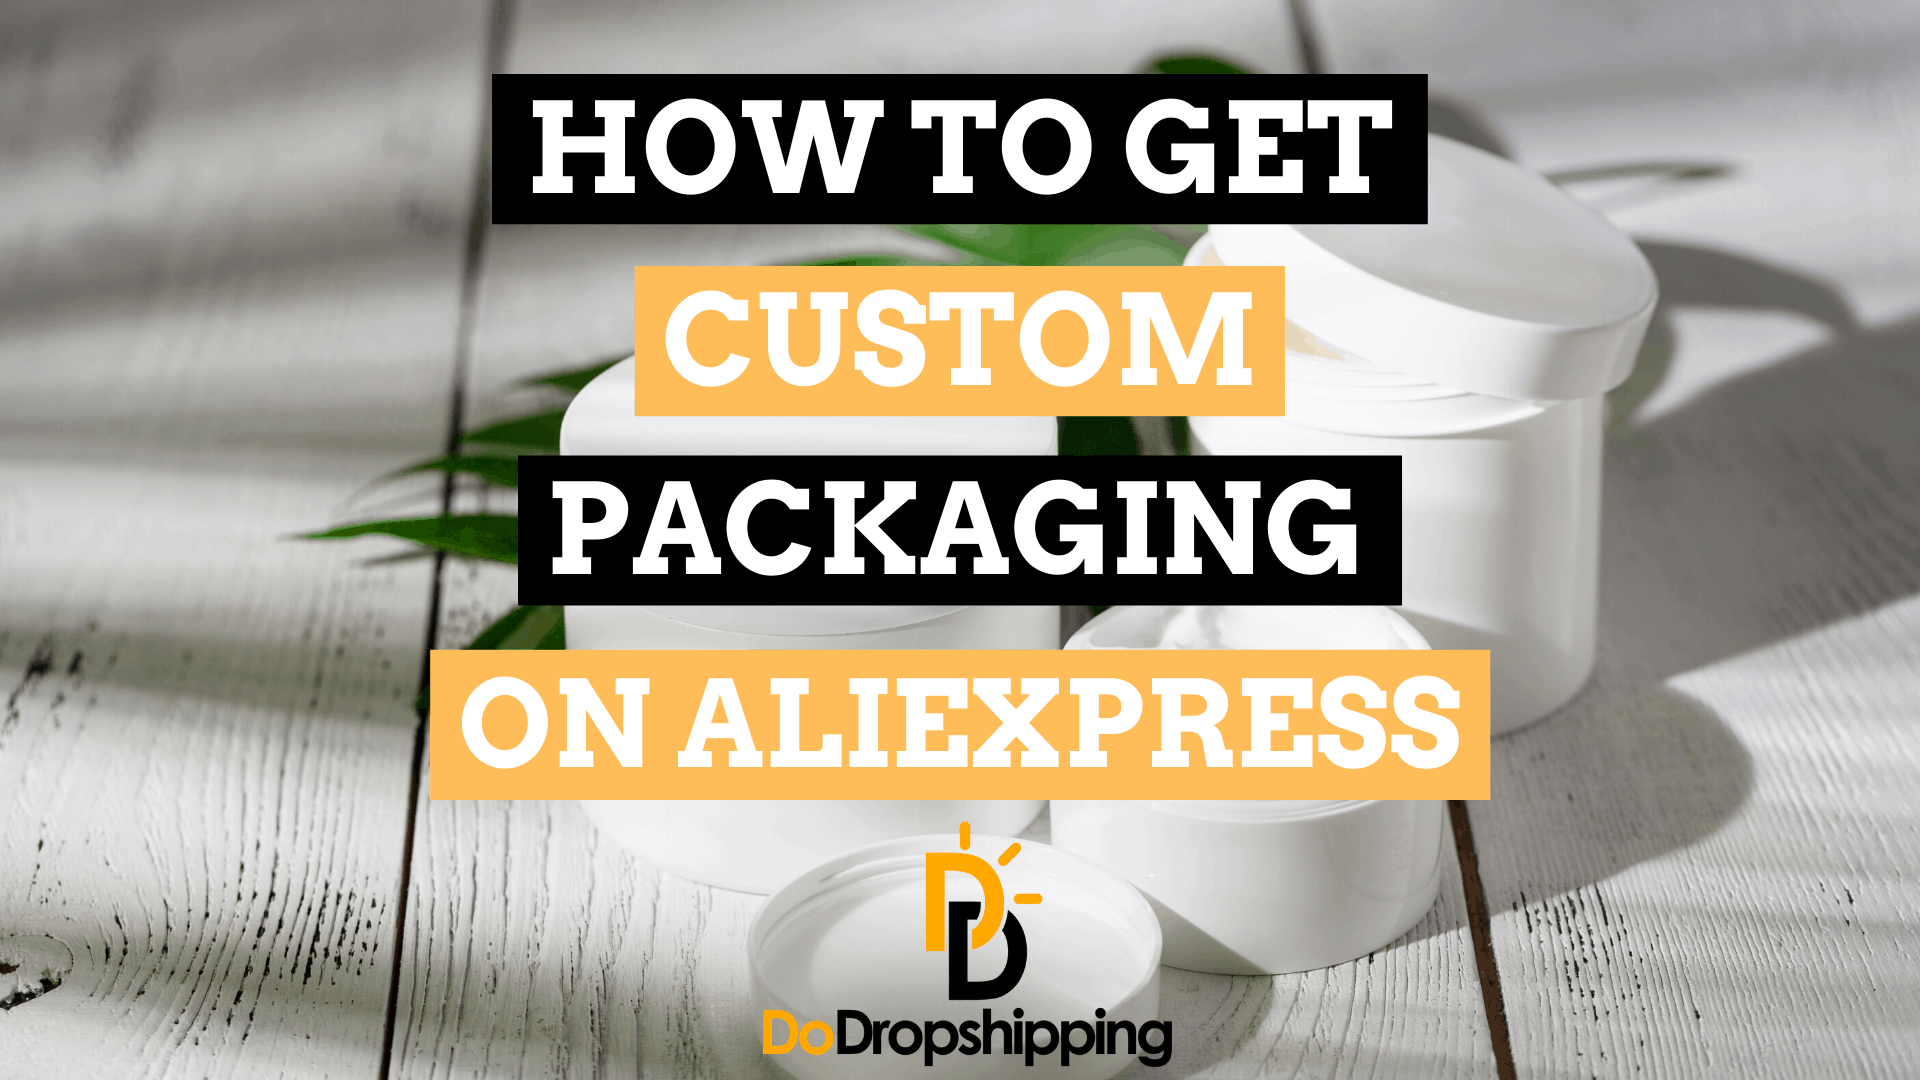 How to Get Custom Packaging on AliExpress (4 Great Tips)